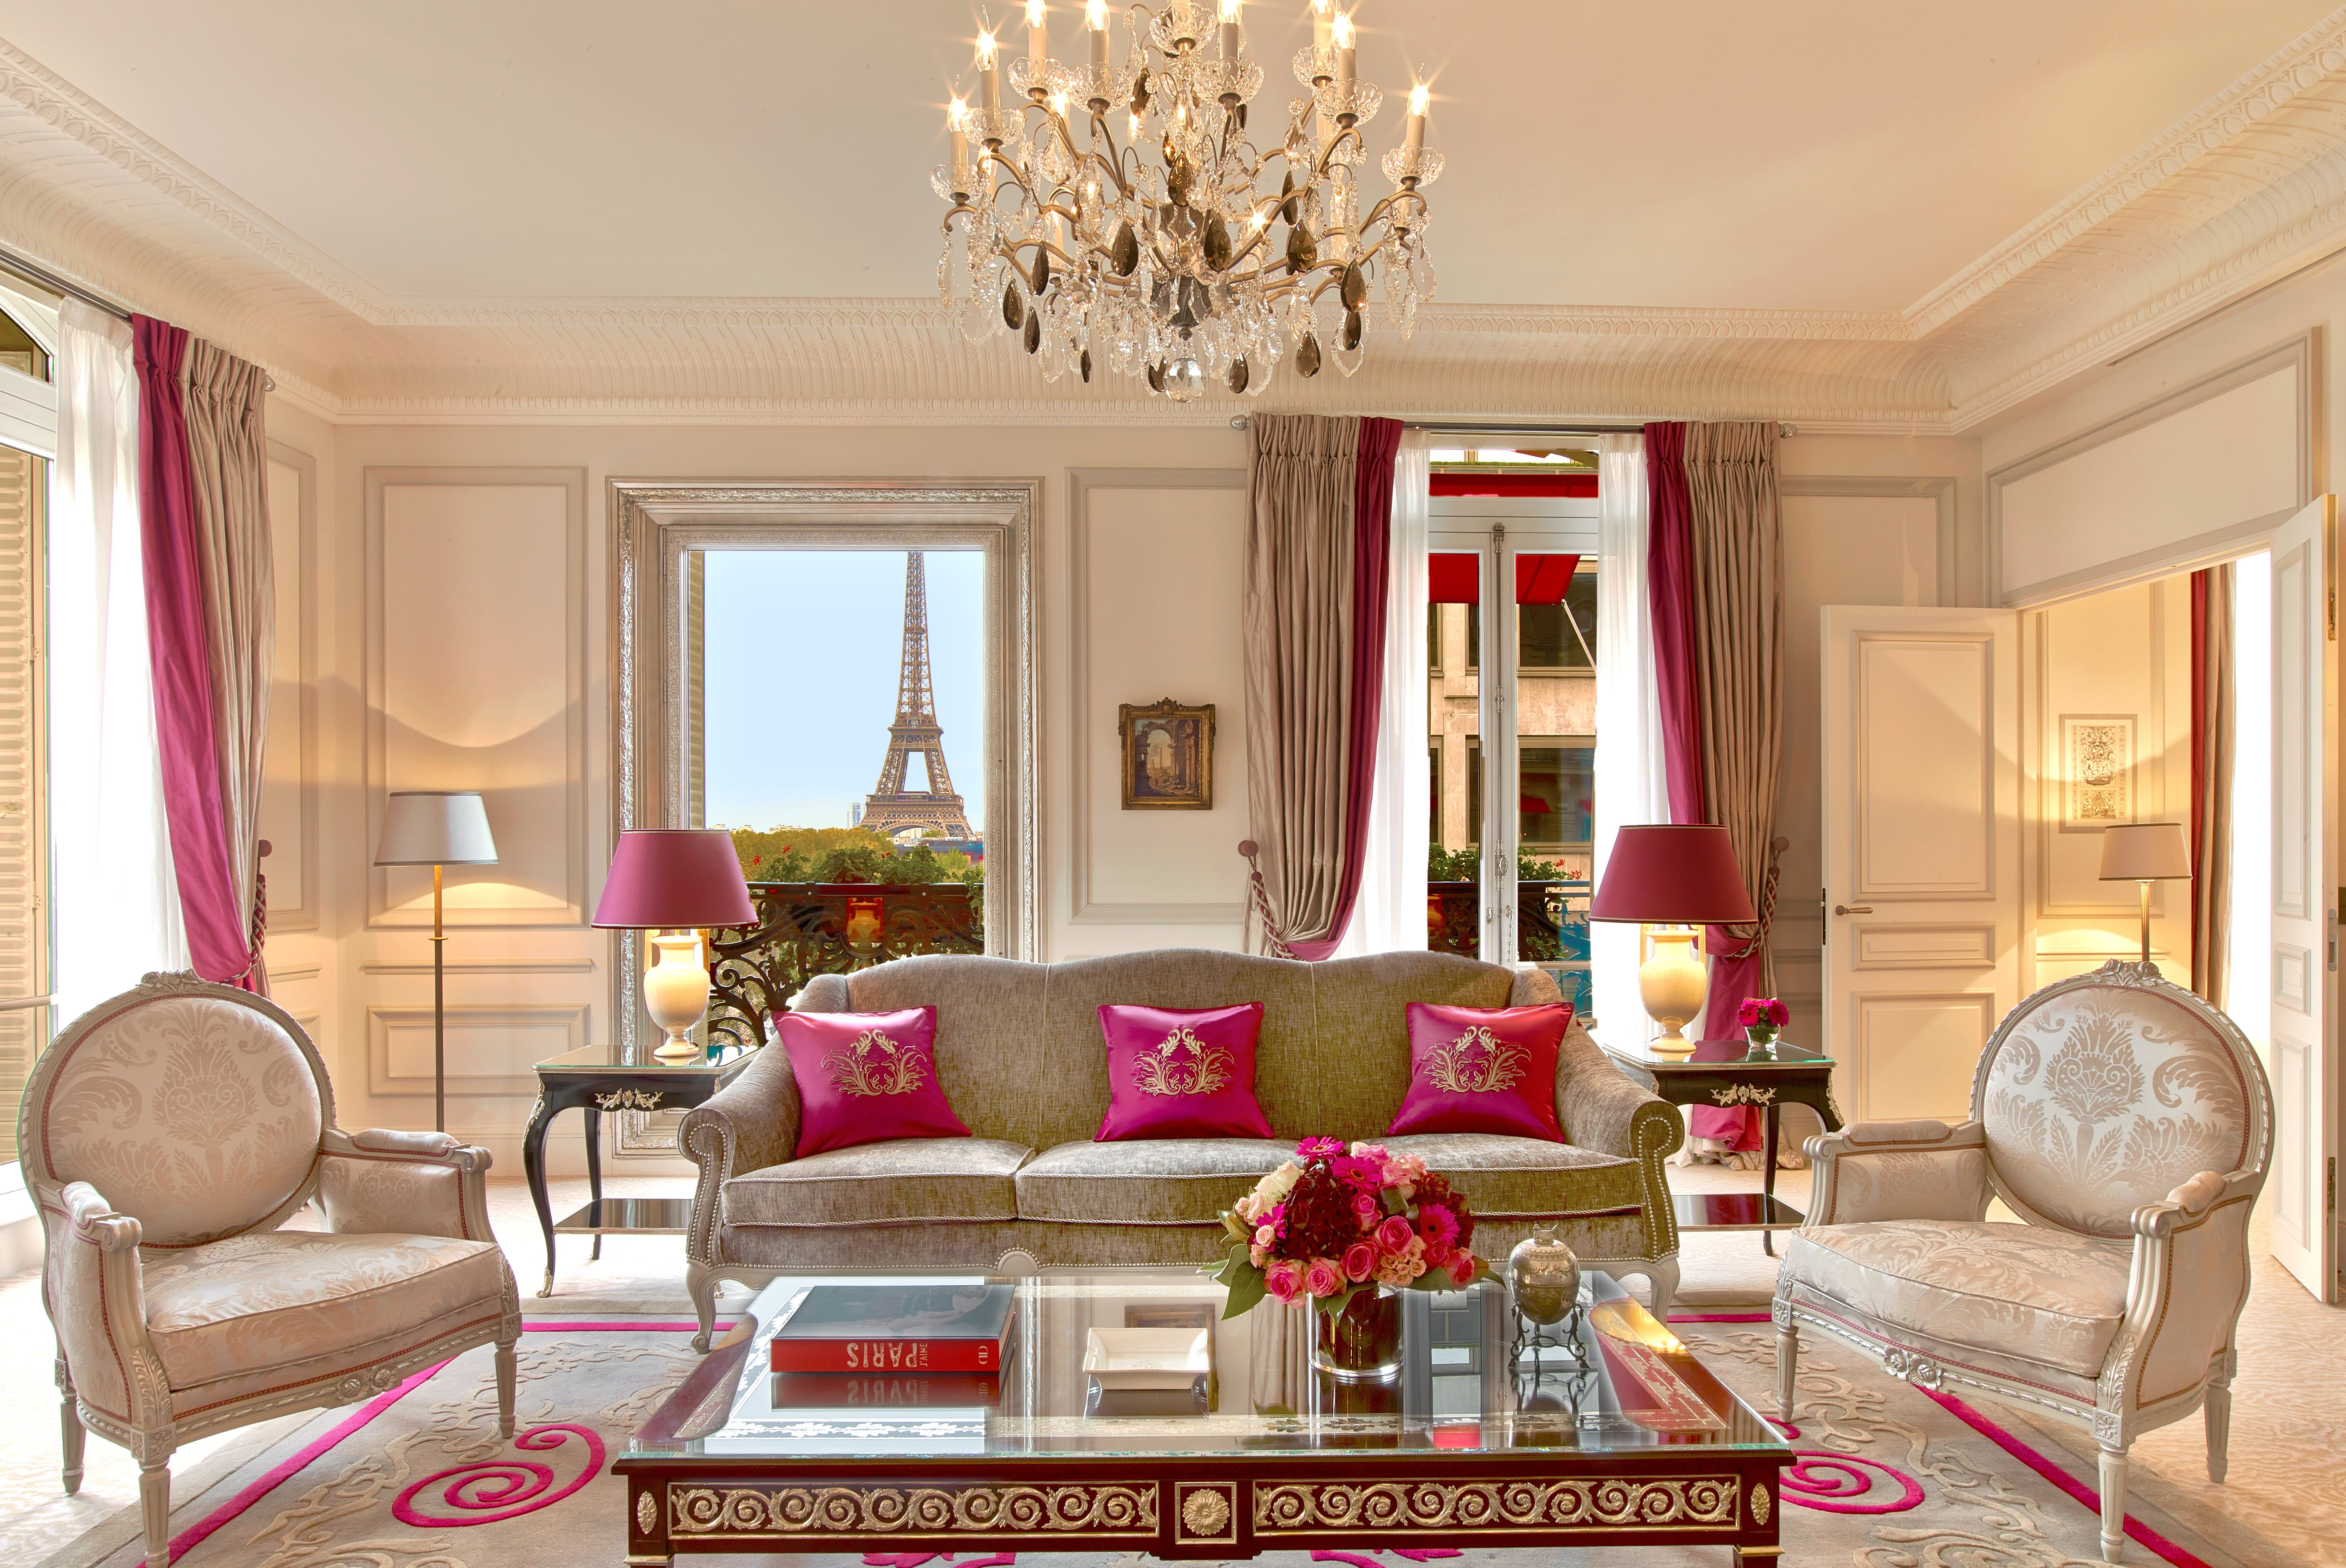 Hotel Plaza Anthenee